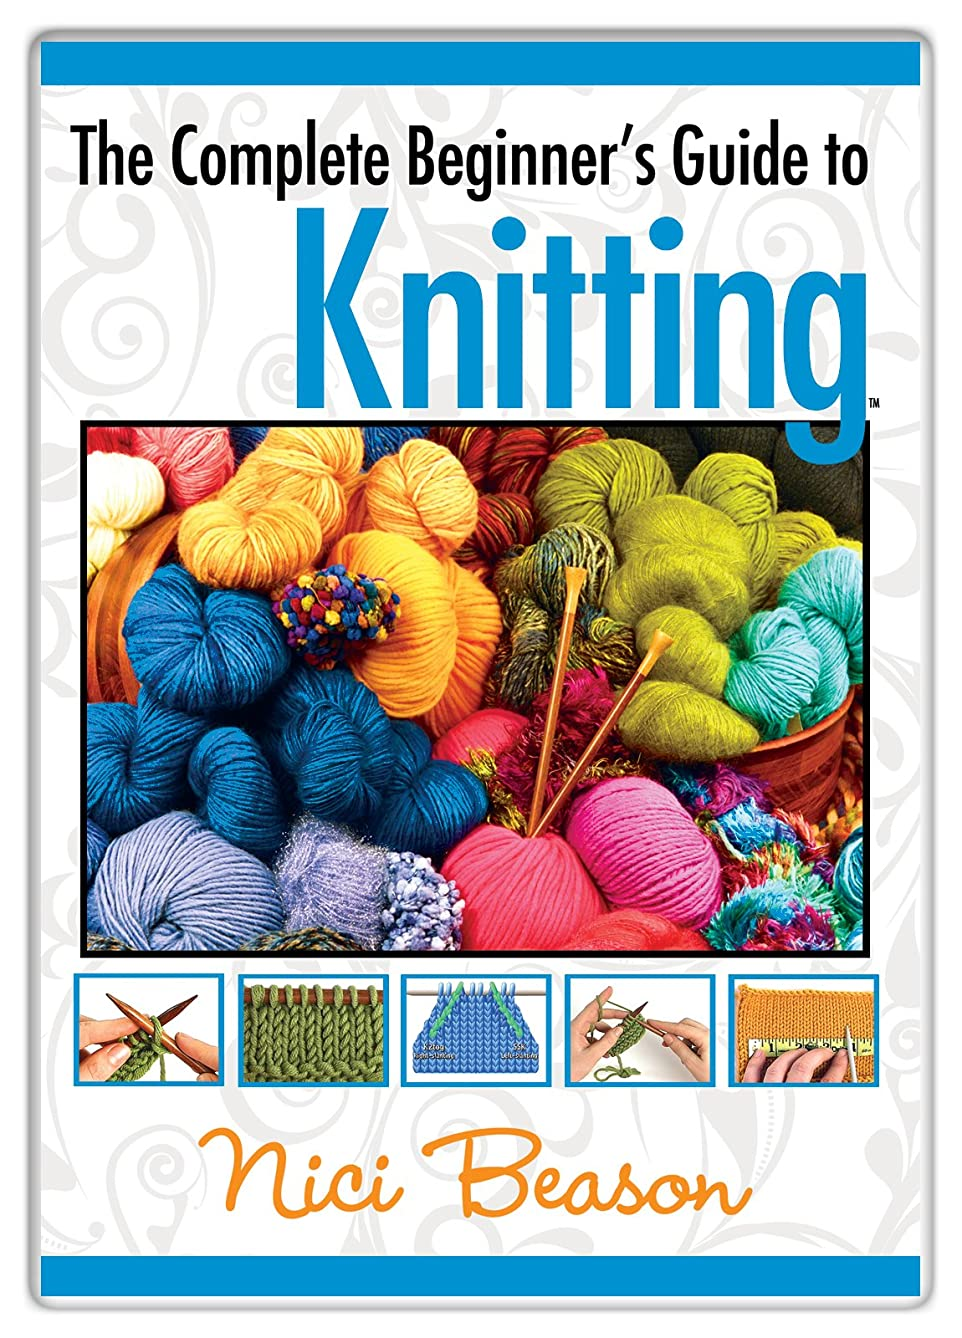 The Complete Beginner's Guide to Knitting